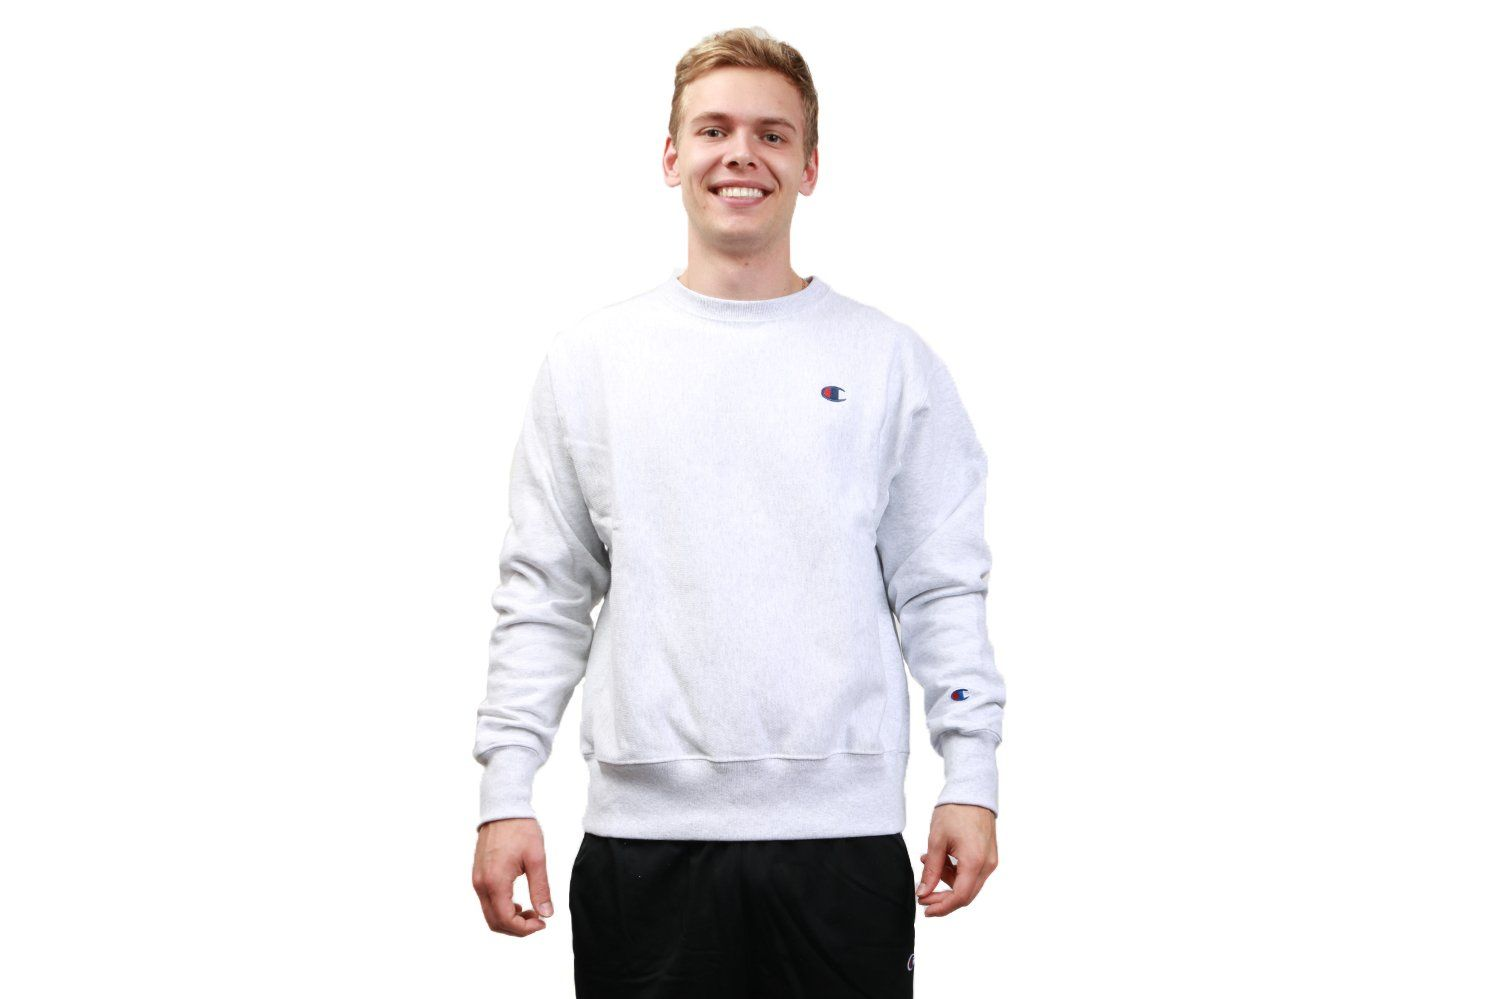 MENS FLEECE PULLOVER 'C' CHEST - GF70 MENS SOFTGOODS CHAMPION SILVER GREY S